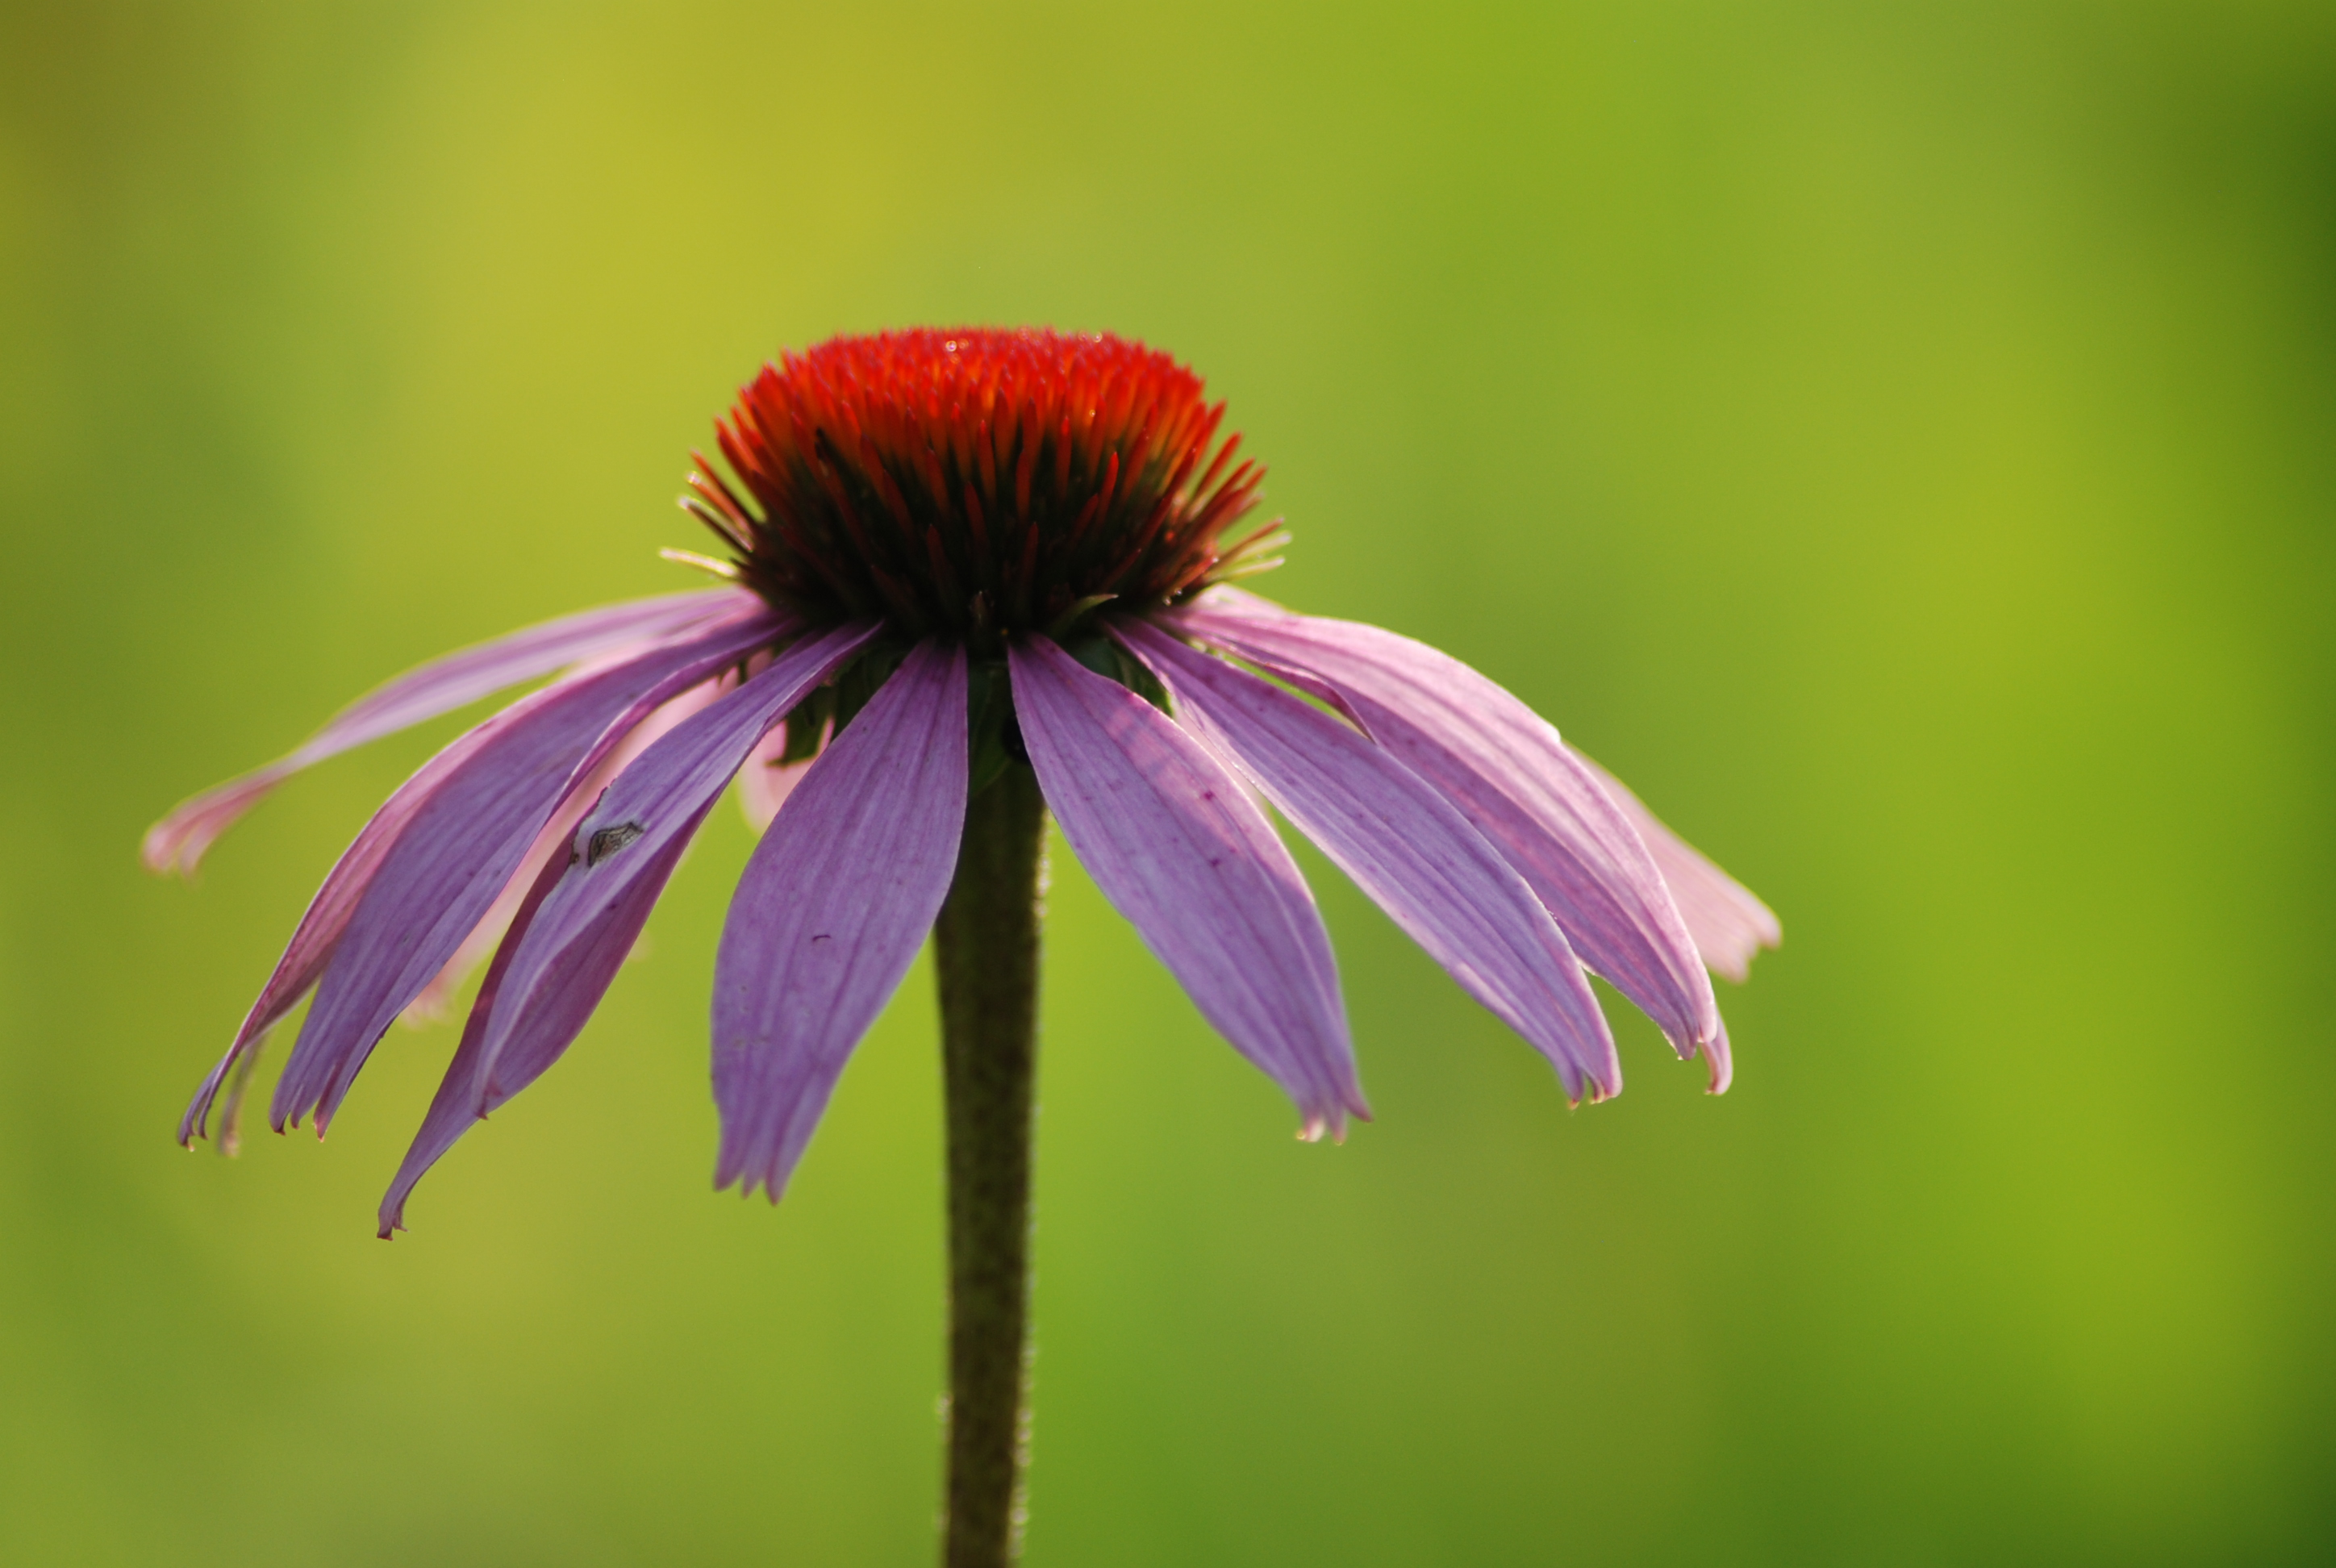 Echinacea bathed in sunlight